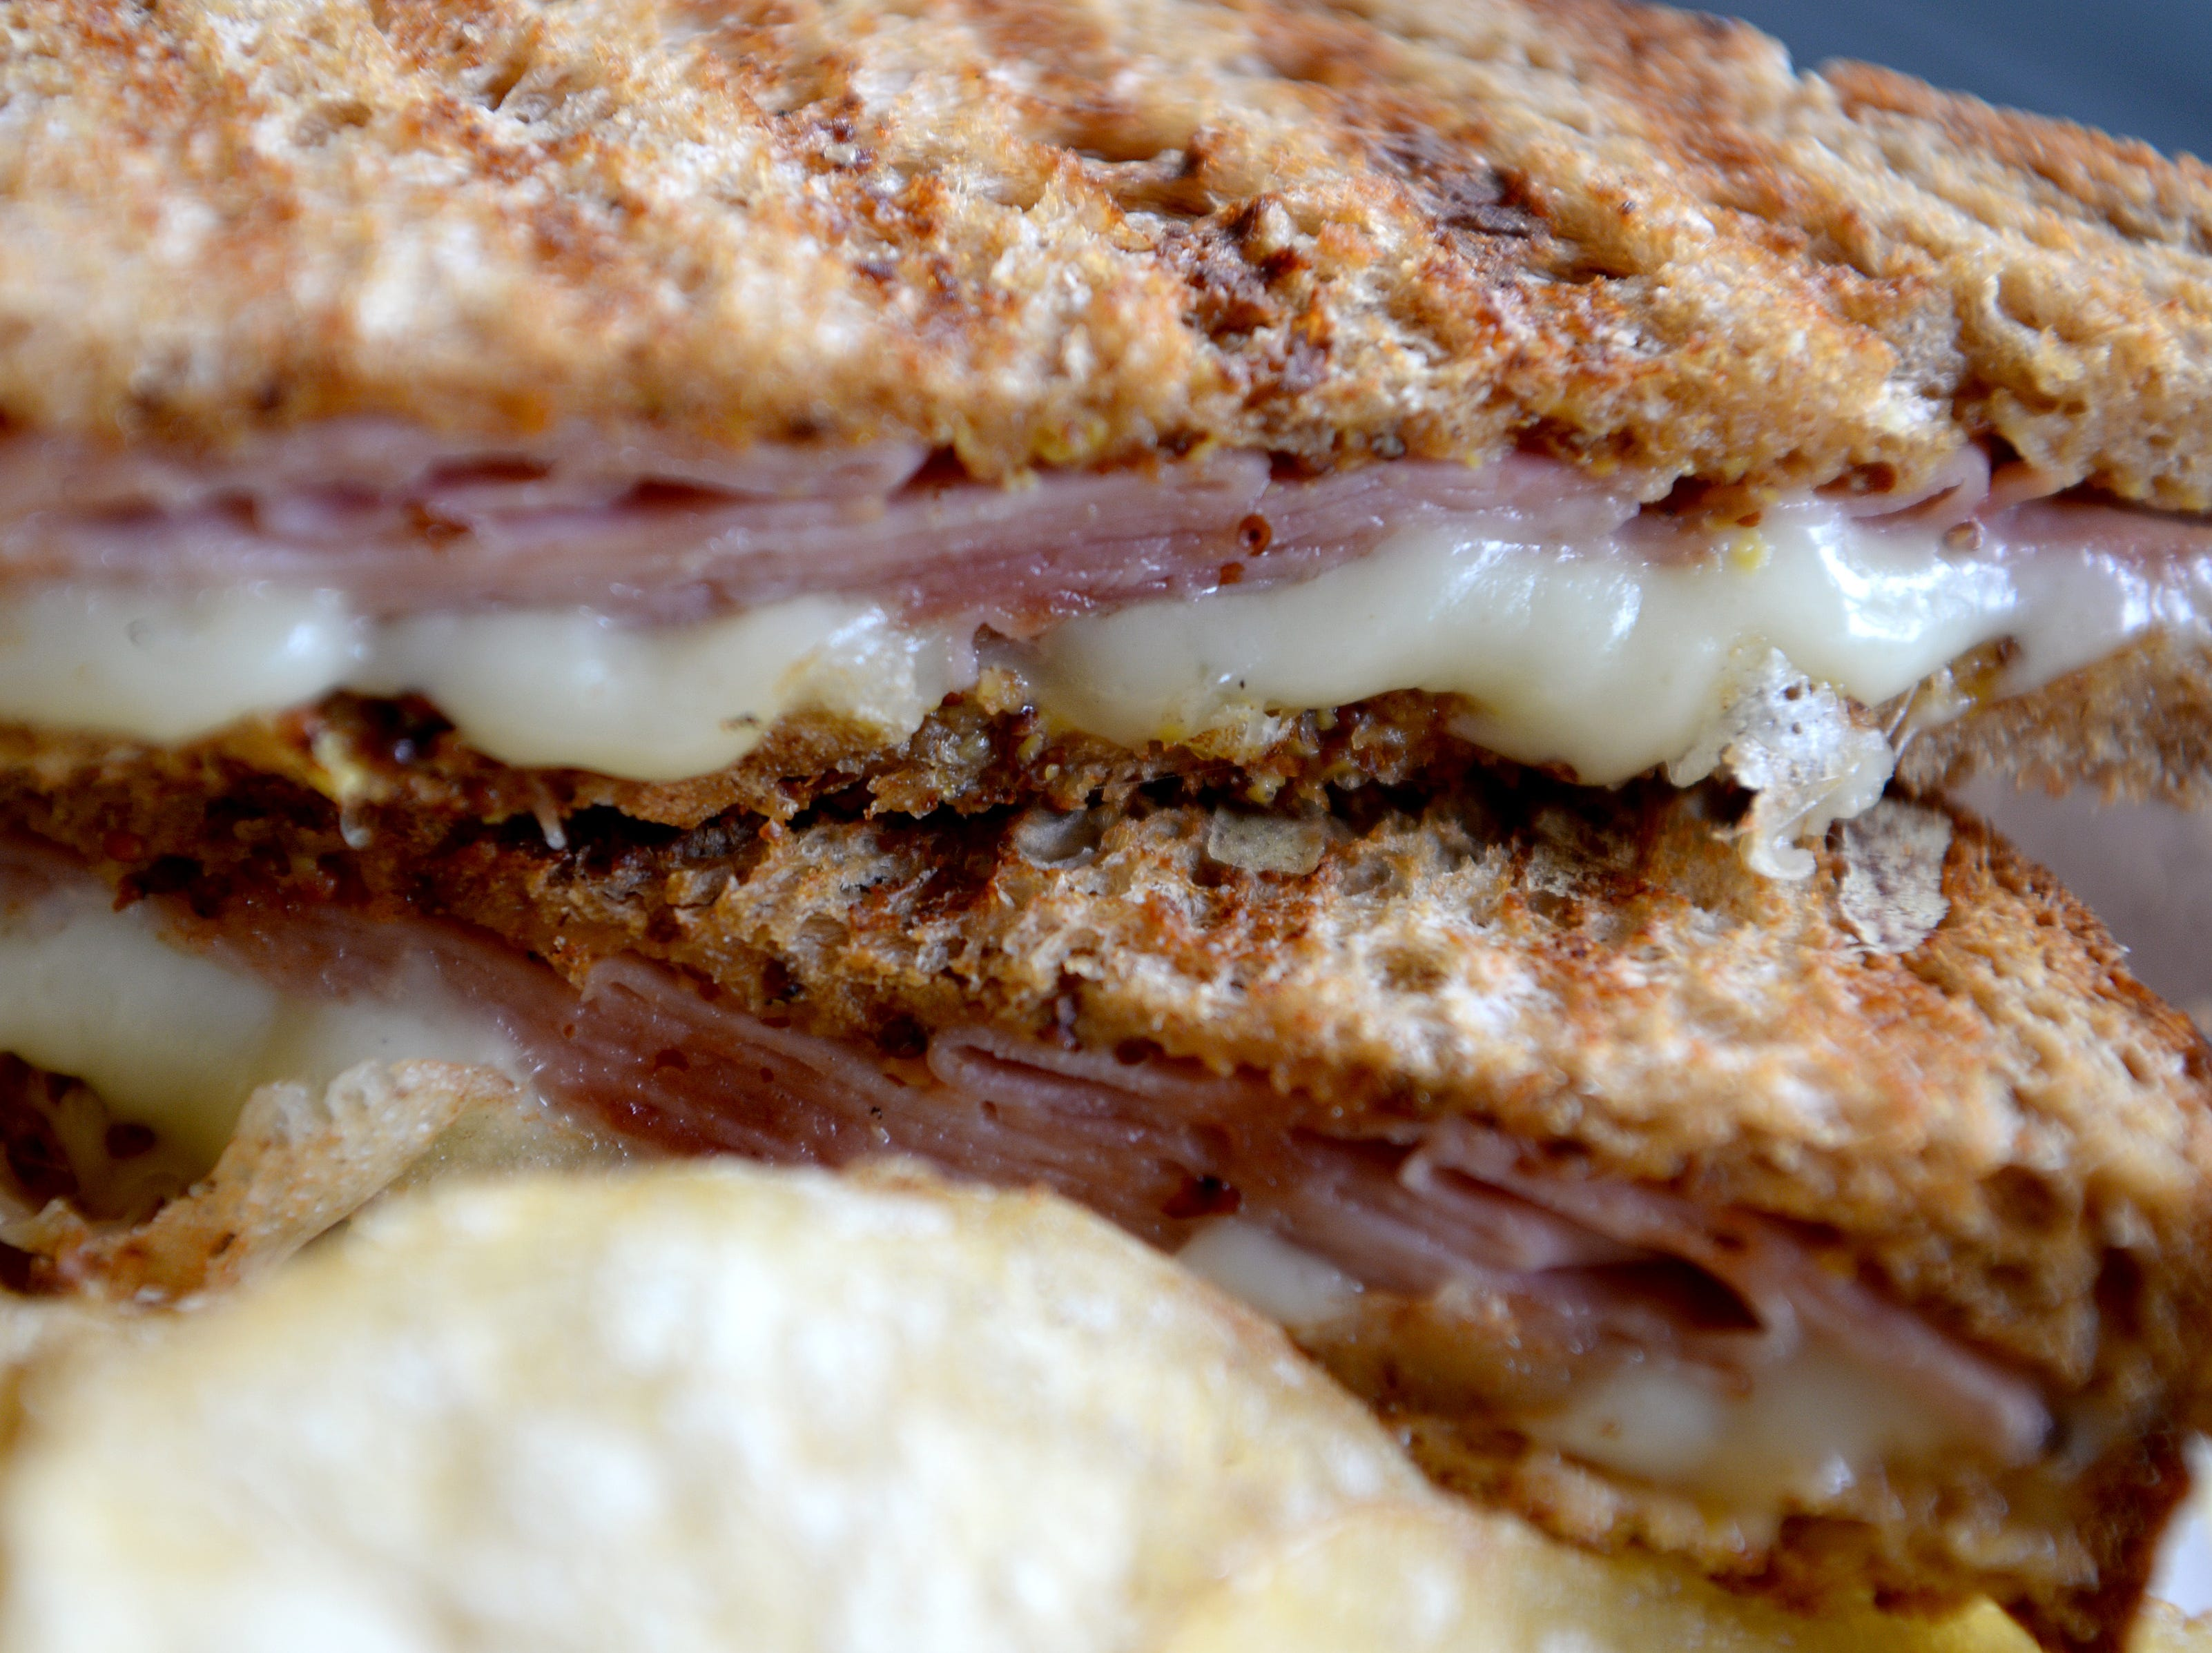 The Huey Lewis Panini at Little Jumbo is ham, gruyere cheese, and whole grain mustard on Annie's organic wheat bread. Their sandwiches are accompanied by salt and pepper chips from The Gourmet Chip Co.